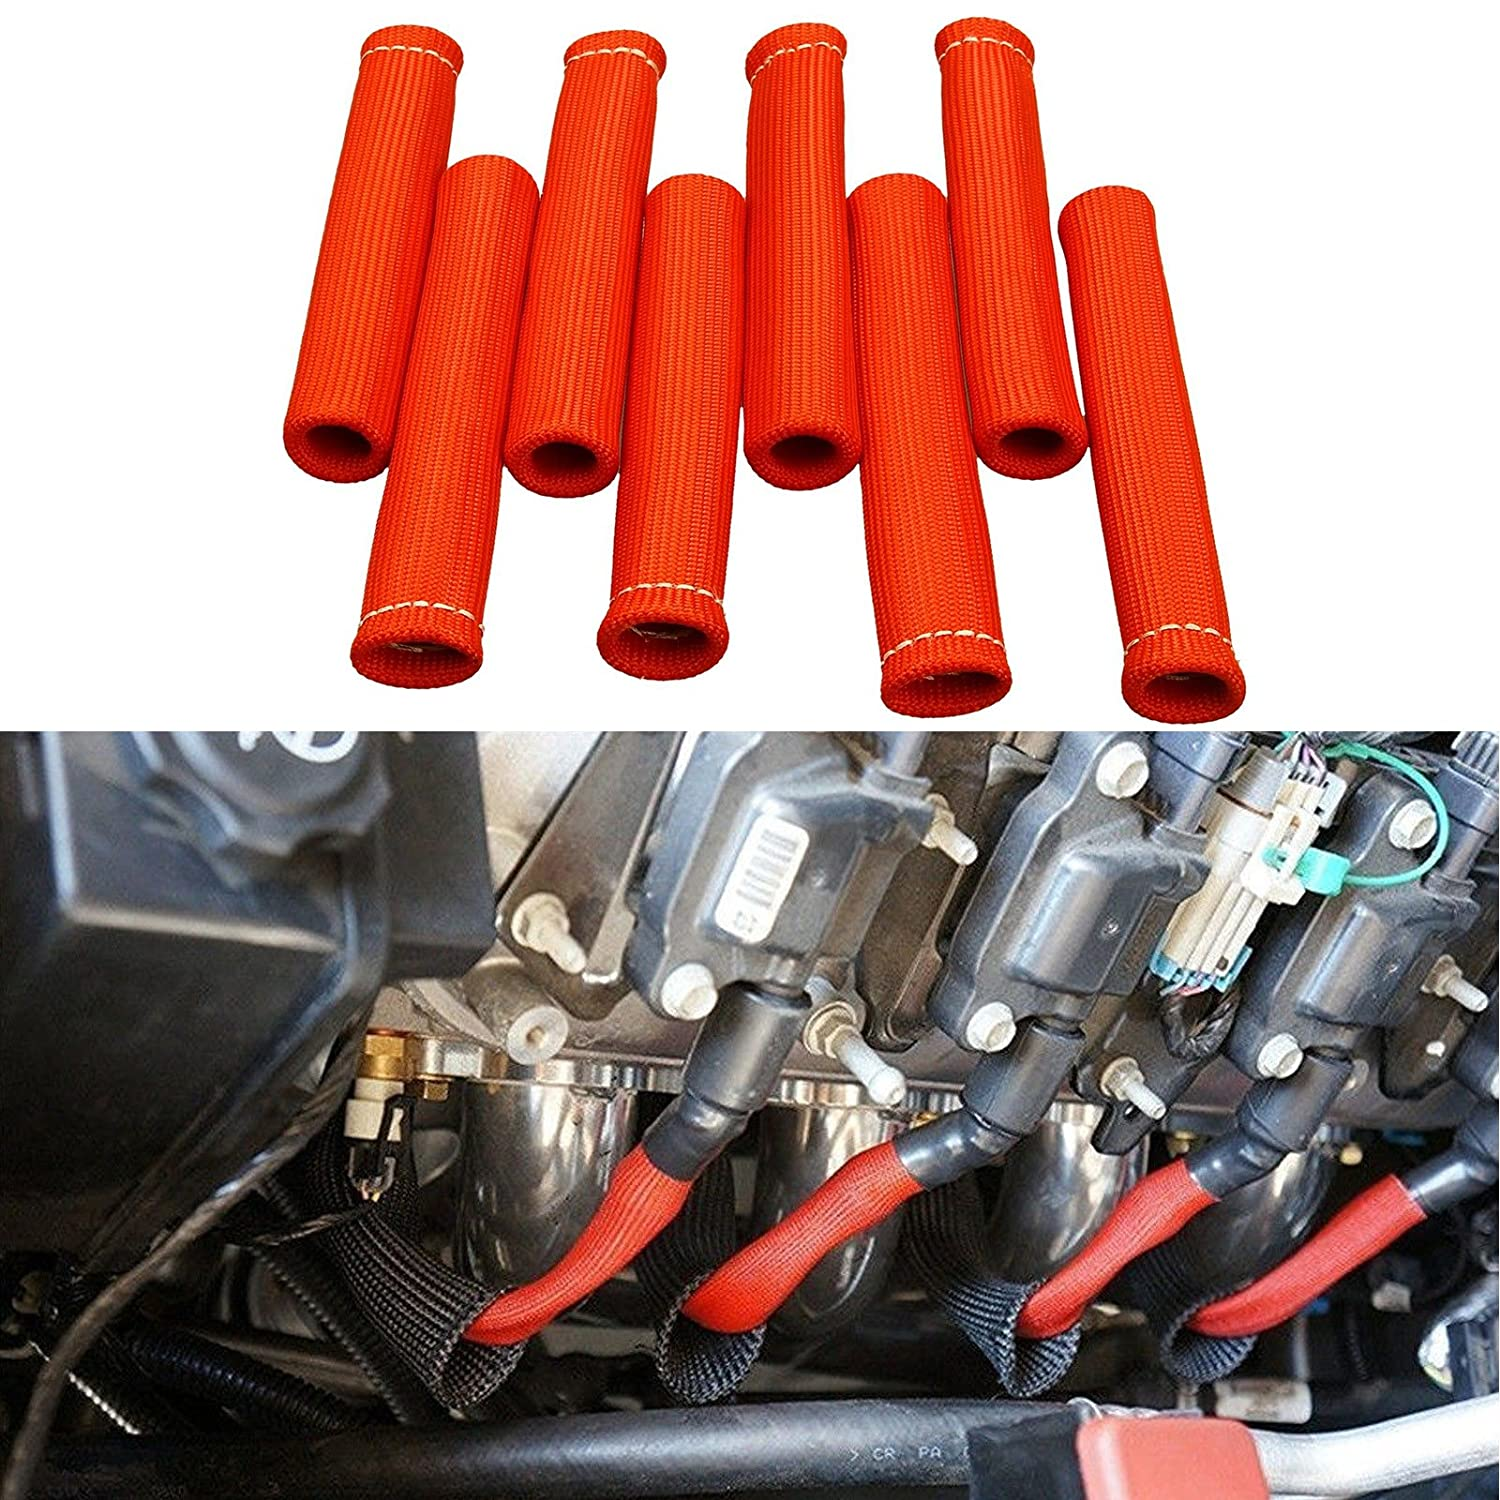 yjracing Red 8Pcs 1200 Degree Spark Plug Wire Boots Heat Shield Protector Sleeve Fit for SBC BBC